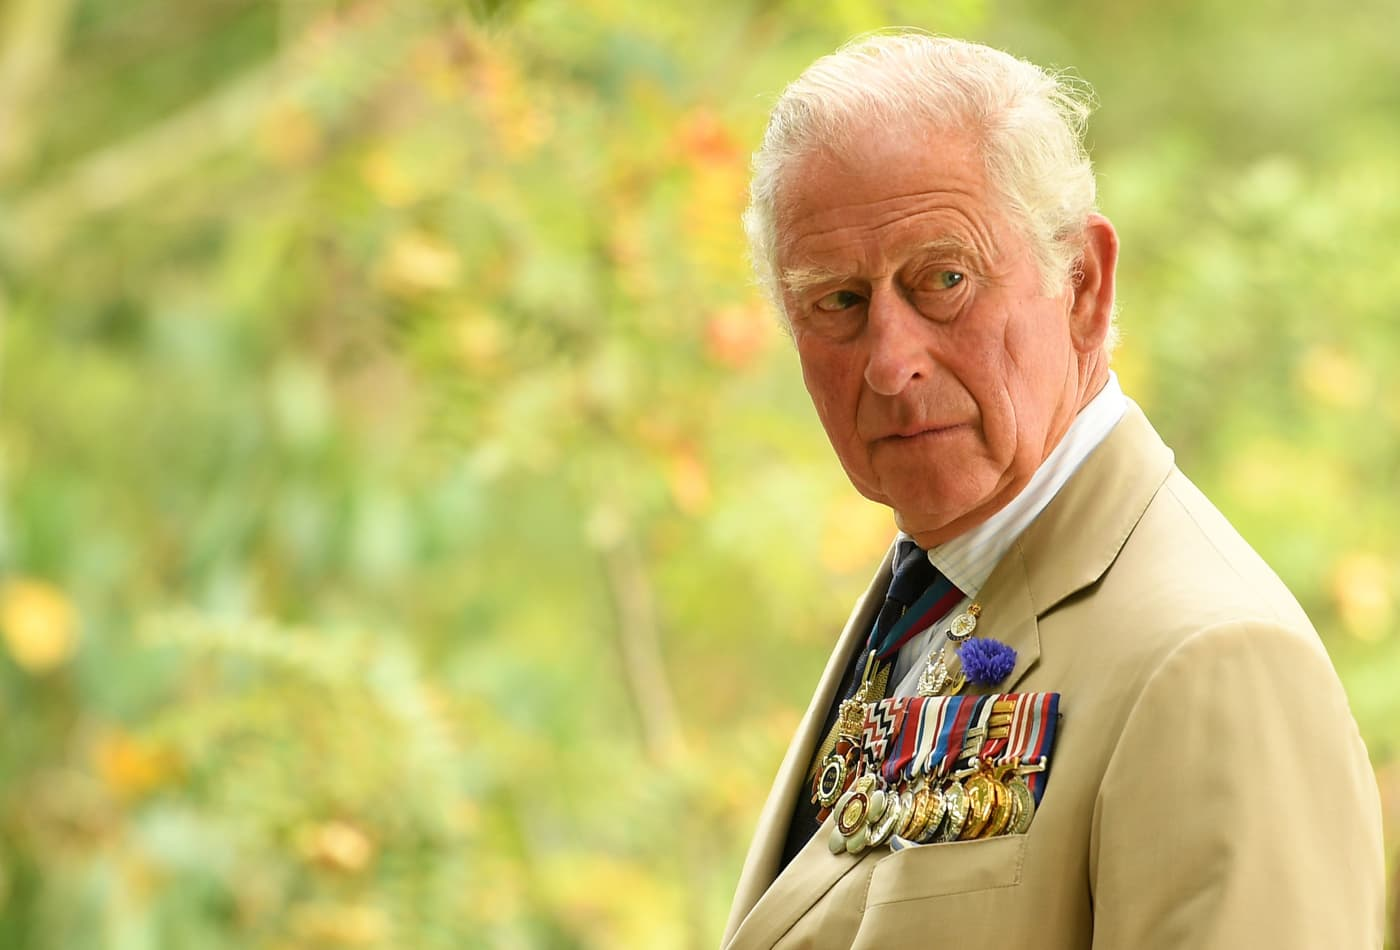 Prince Charles calls for a 'Marshall-like plan' for the planet